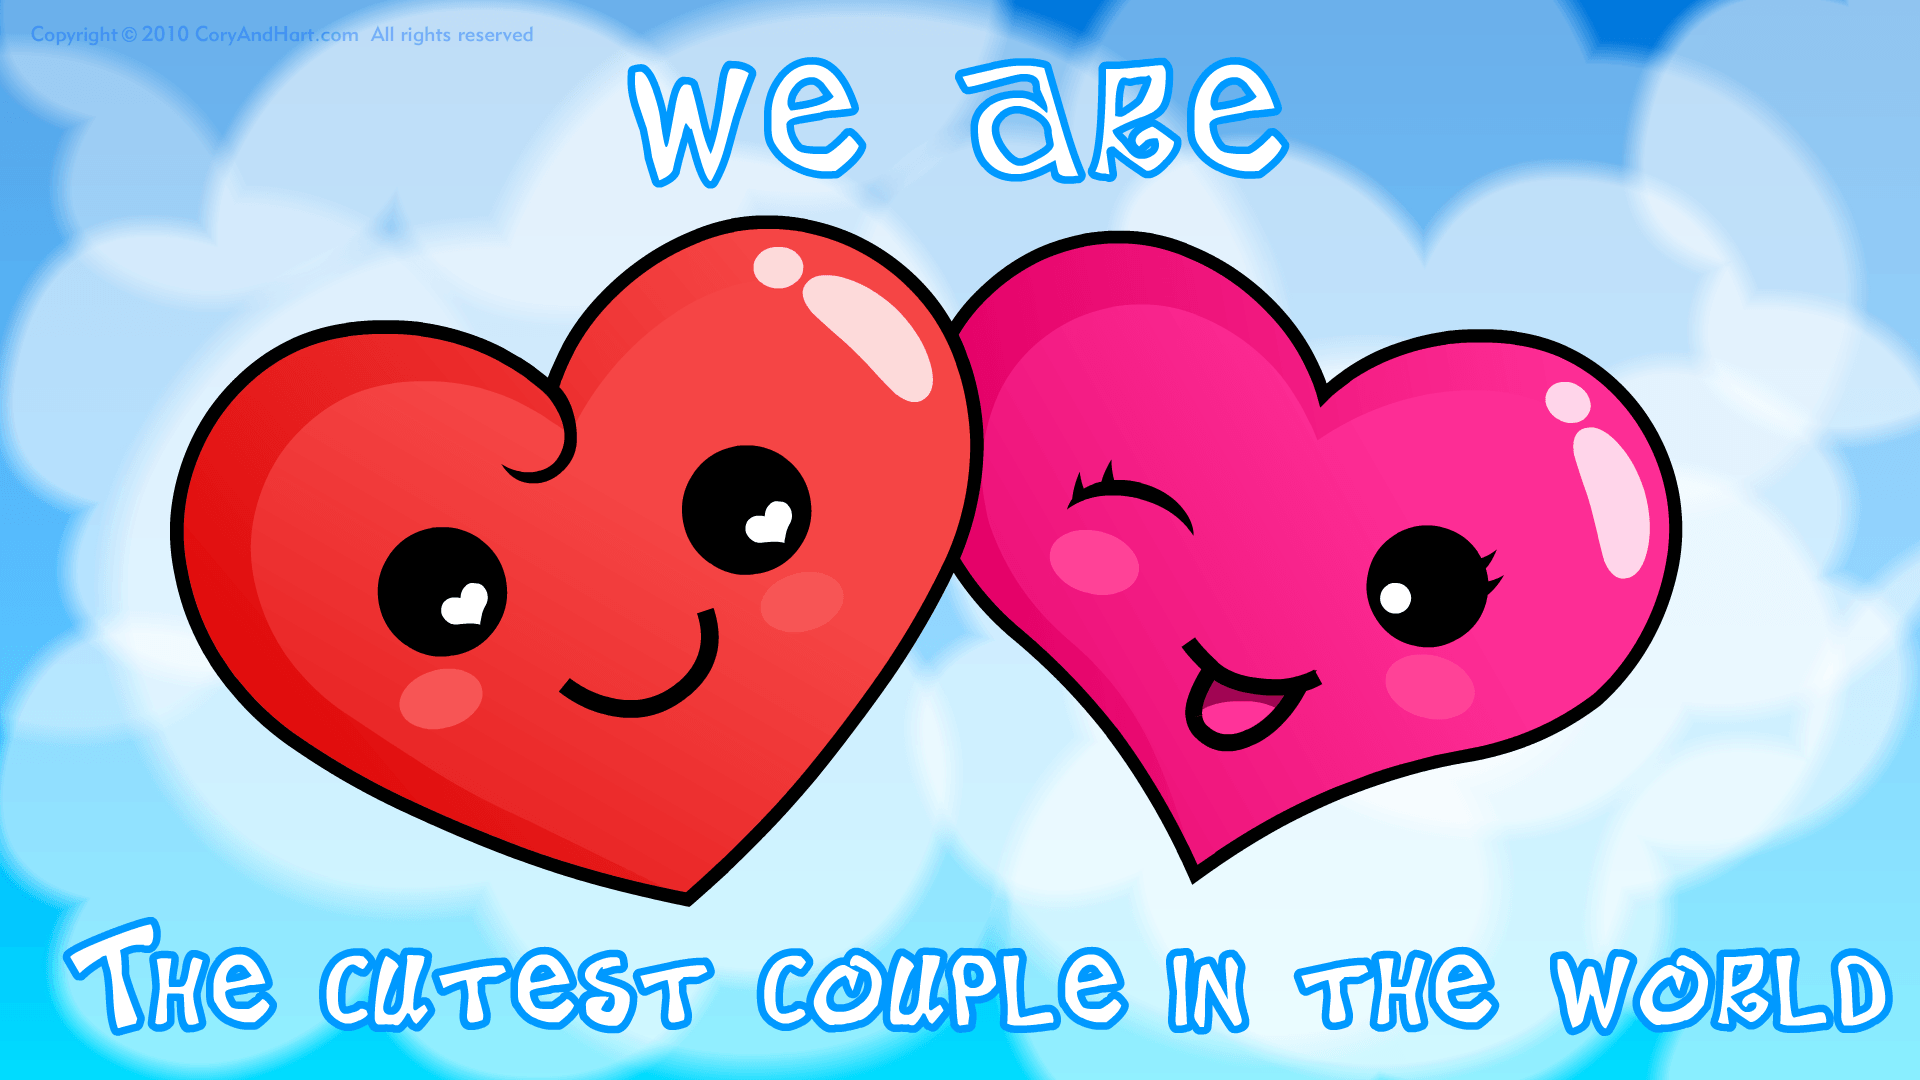 cute couple Love Wallpaper Backgrounds : Free Love Wallpapers Gallery - Wallpaper cave